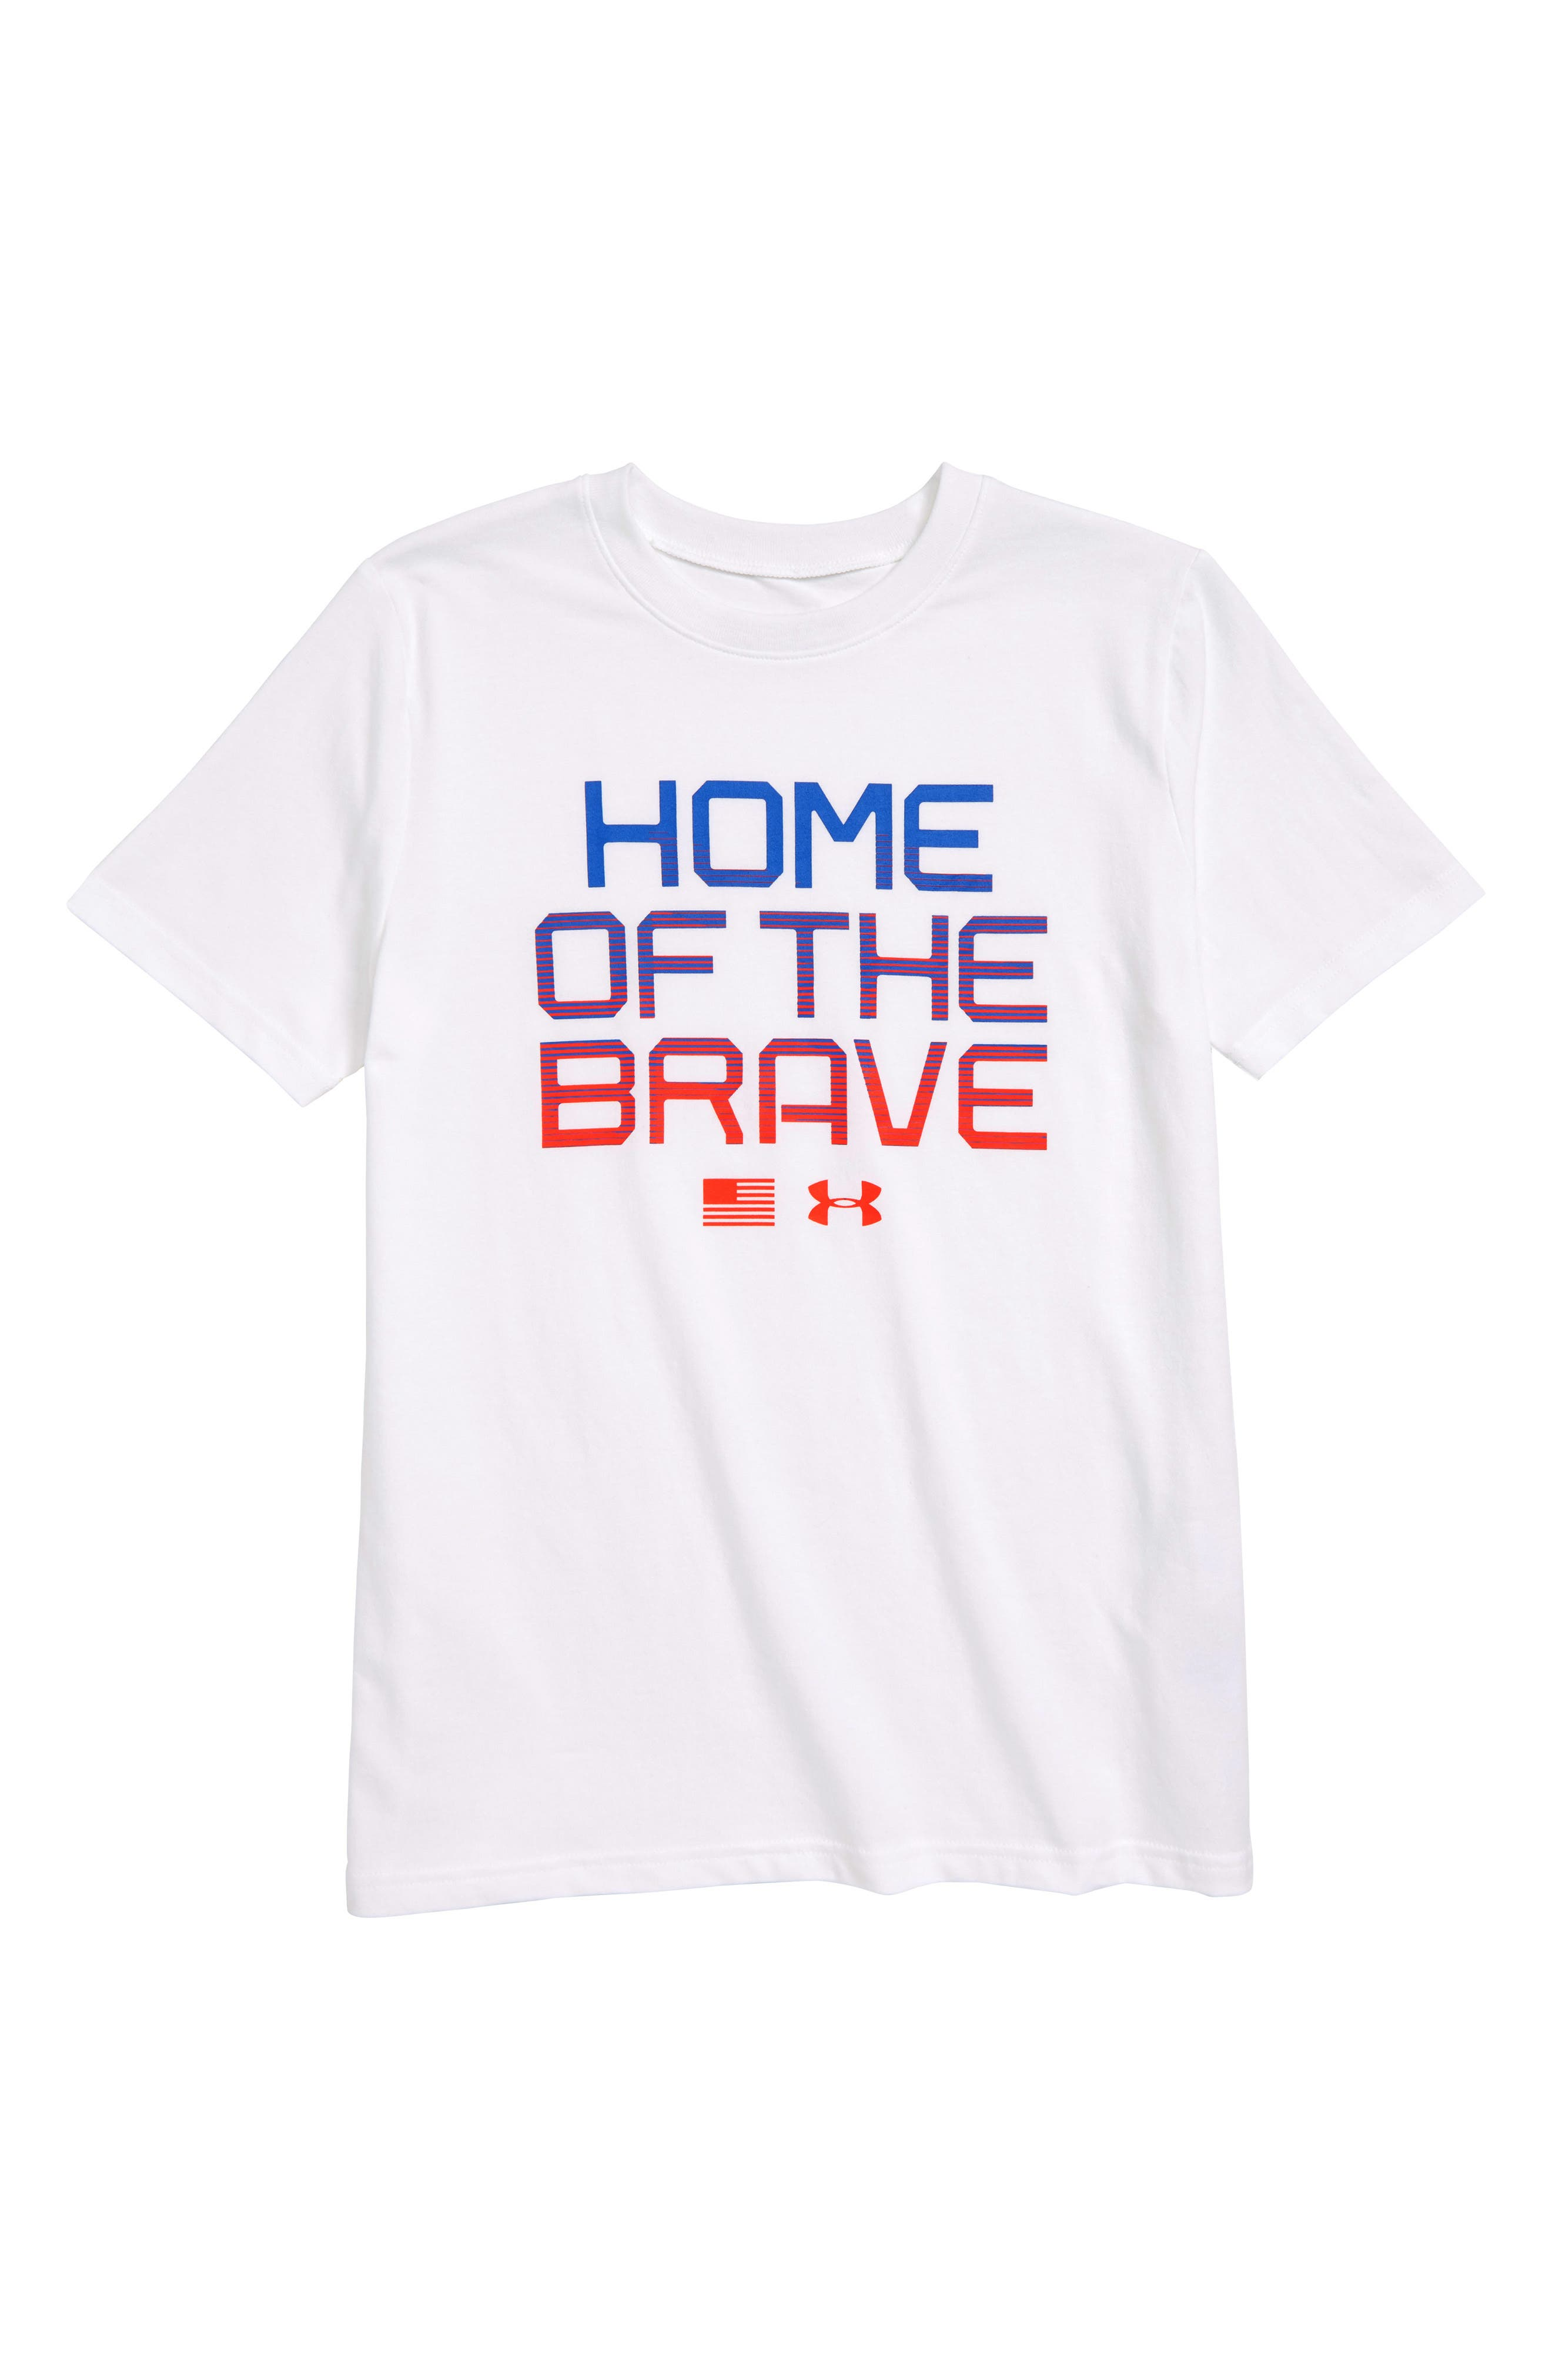 Home of the Brave Graphic T-Shirt,                             Main thumbnail 1, color,                             100